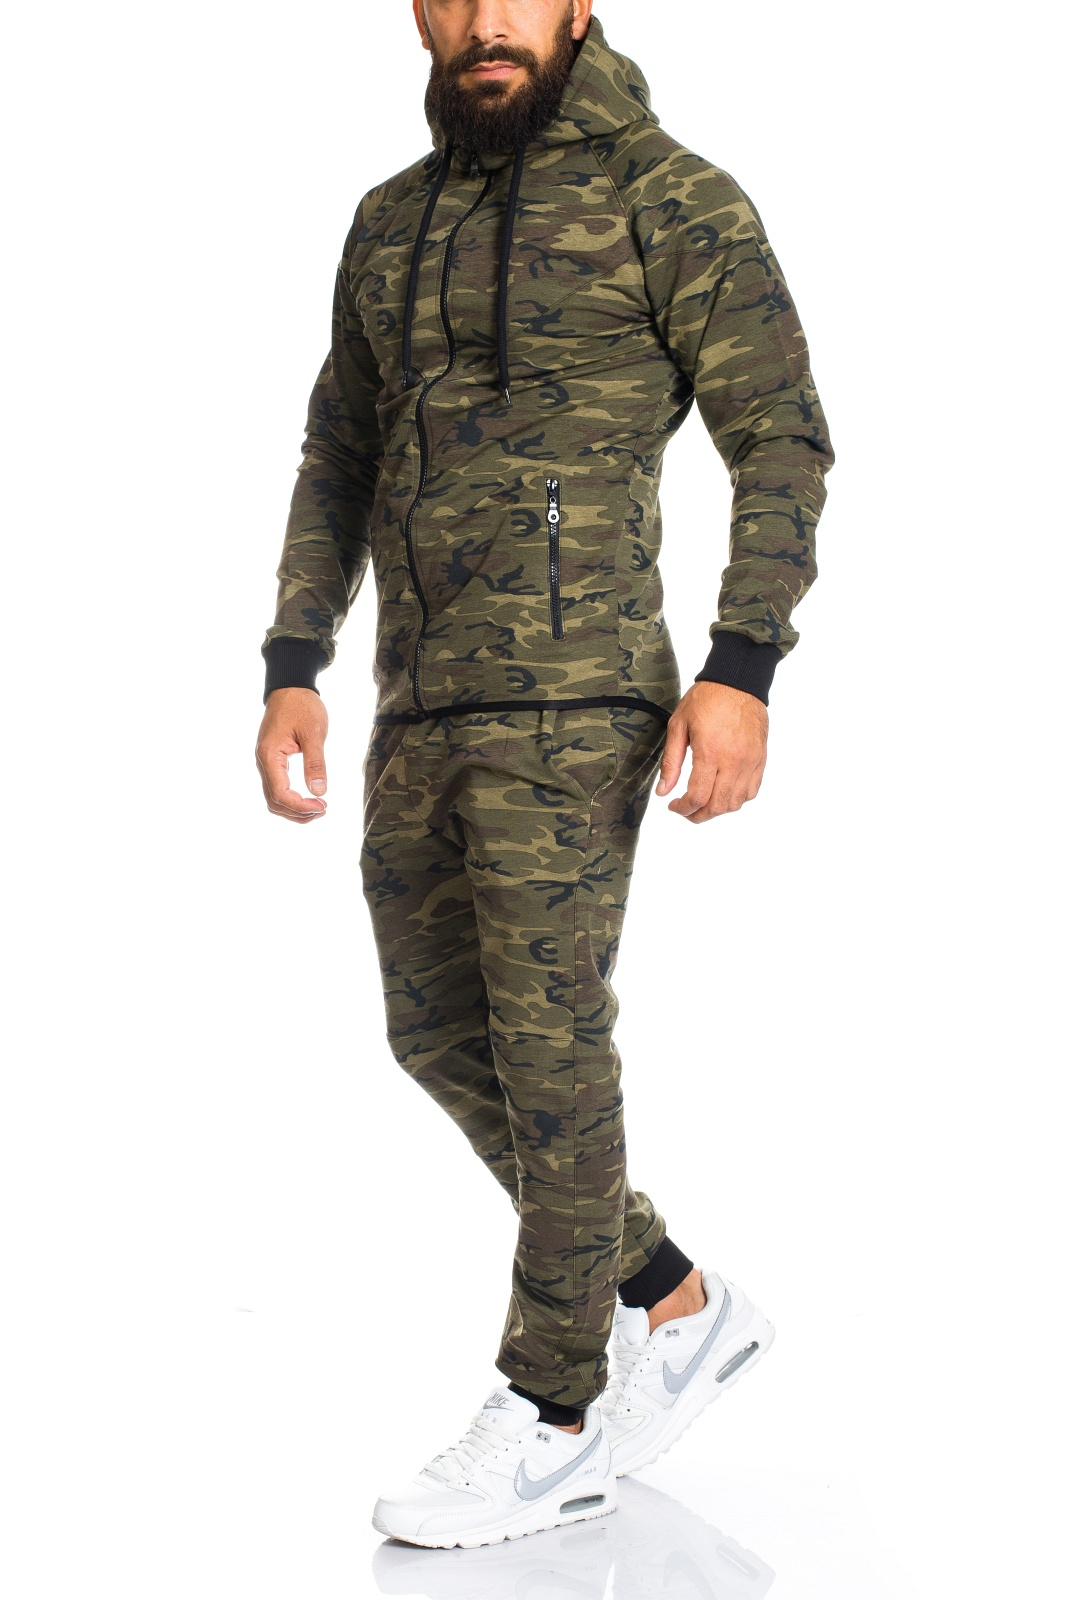 herren camouflage army jogginganzug jogging hose jacke sportanzug hose ll202c ebay. Black Bedroom Furniture Sets. Home Design Ideas